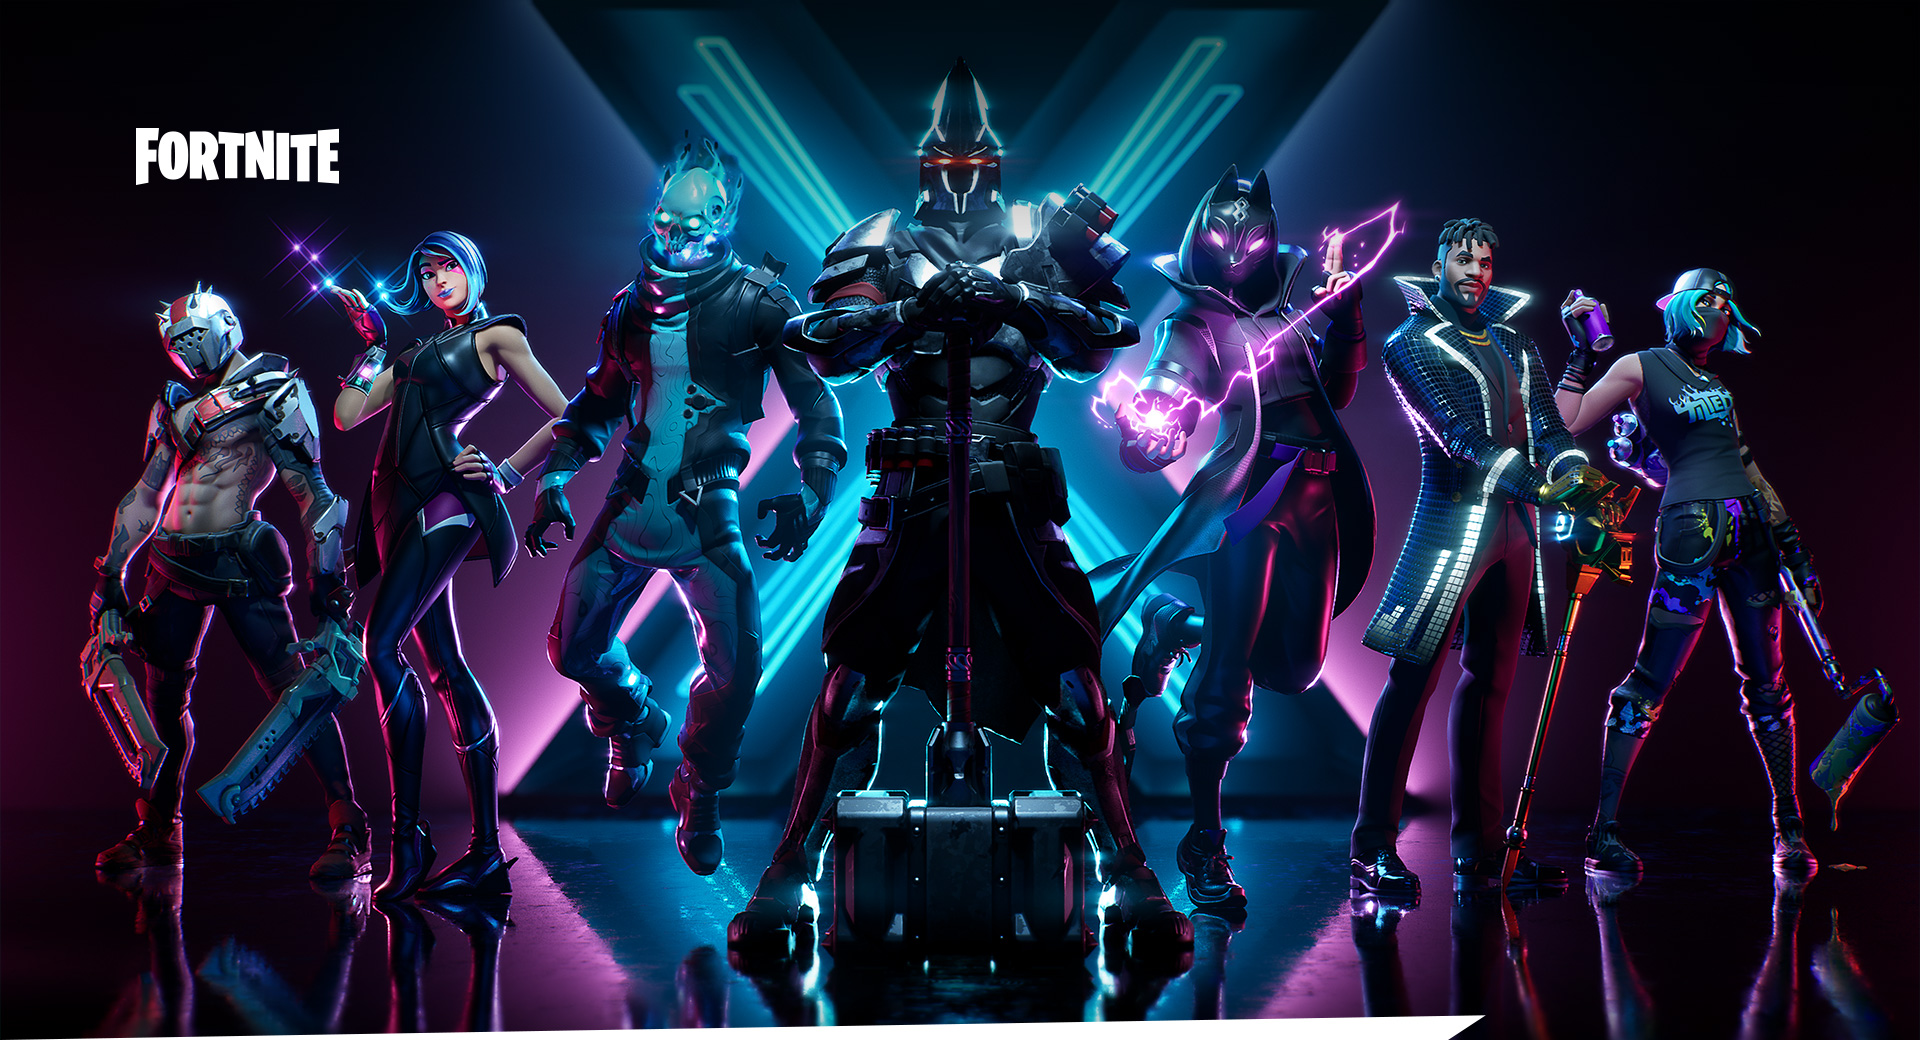 Fortnite, vue de face de sept personnages Fortnite en train de poser